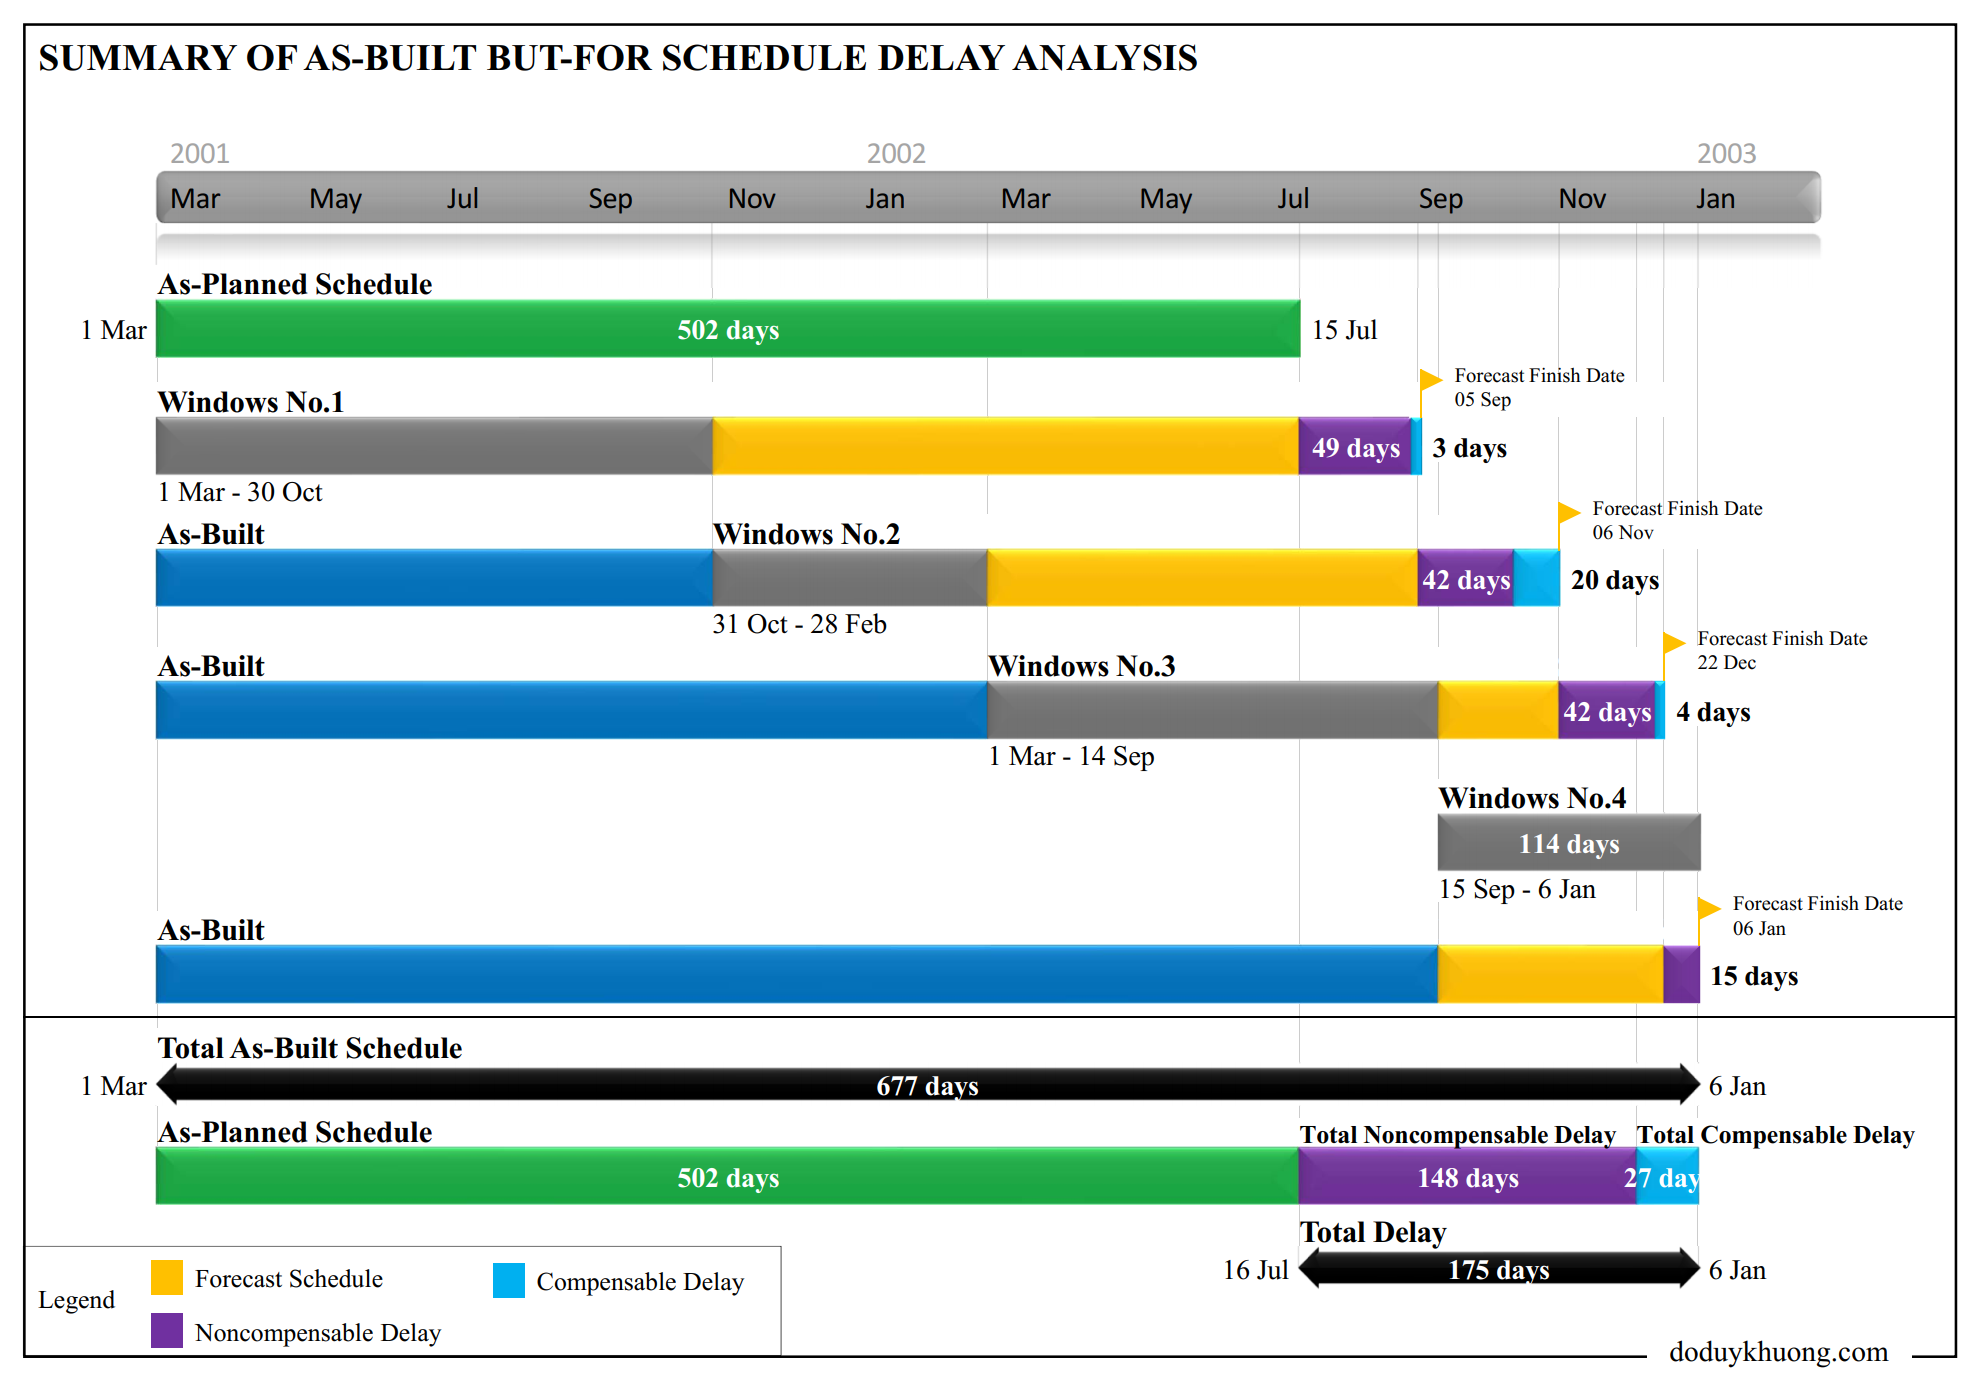 Forensic Delay Schedule Analysis - Summary Graphic Report-3- As-Built But-For, Collapsed As-Built